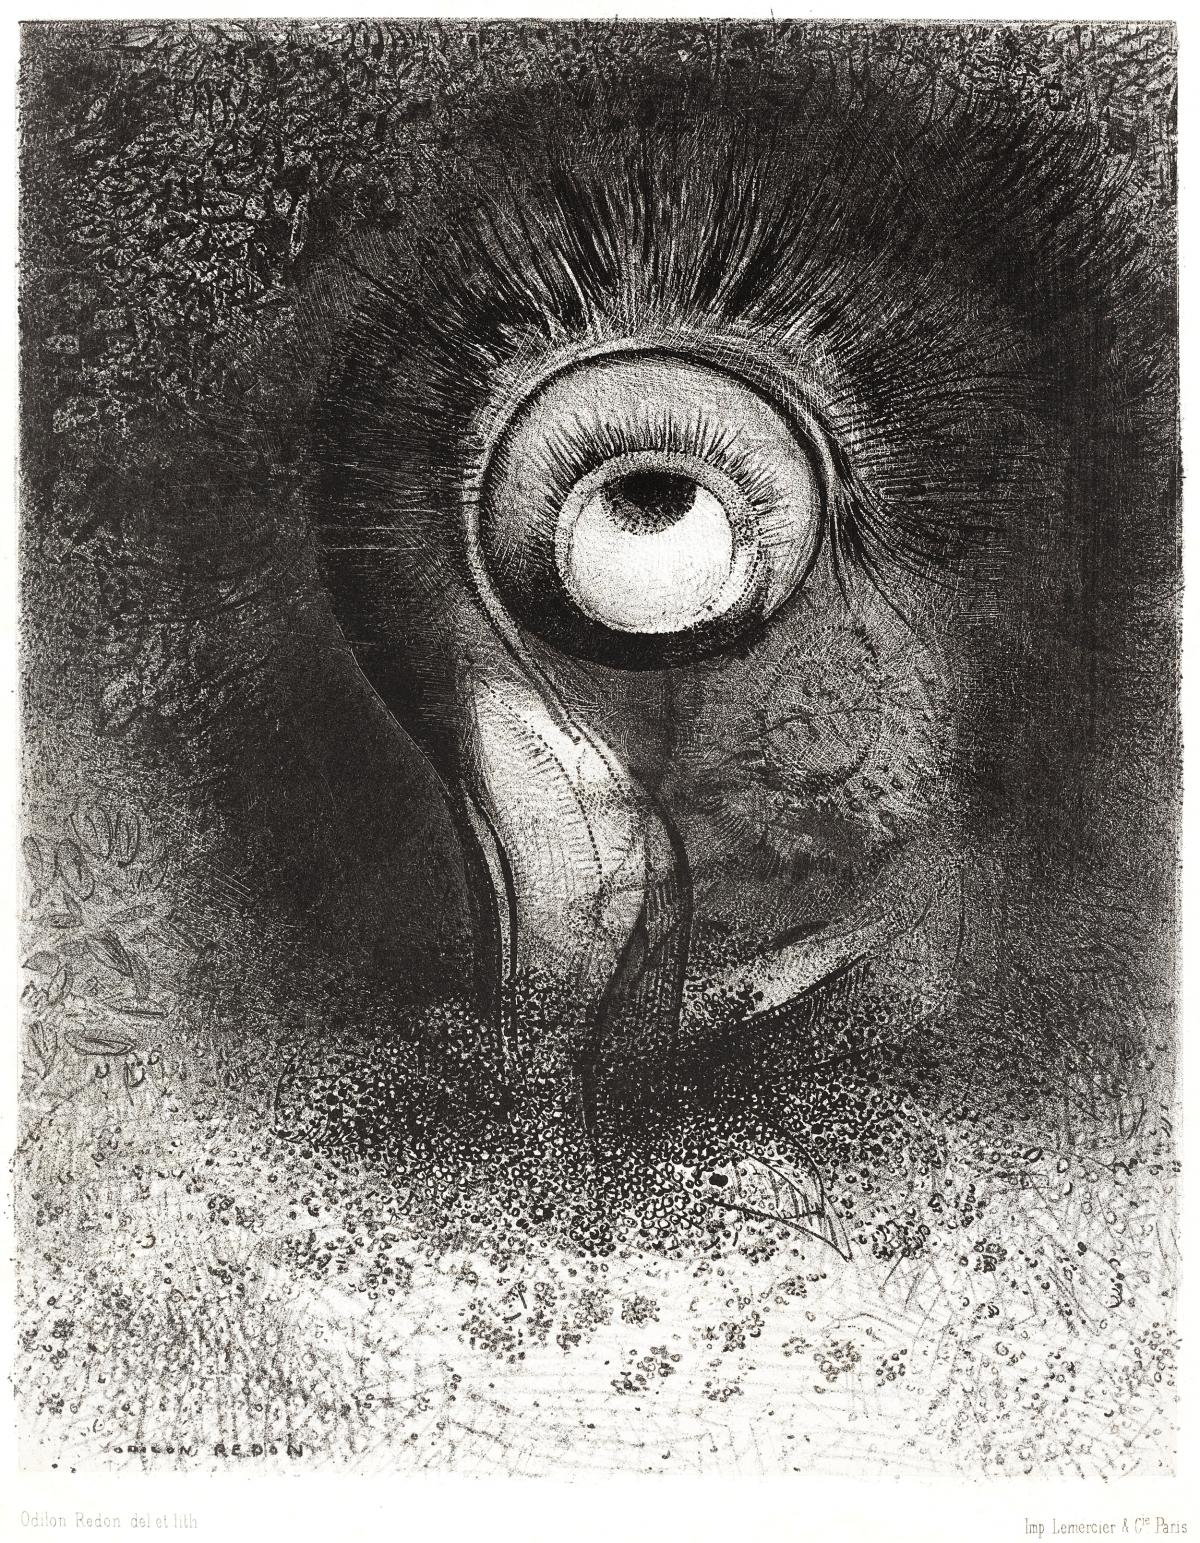 There Was Perhaps a First Vision Attempted by the Flower (1883) by Odilon Redon. Original from the National Gallery of Art.  #388093